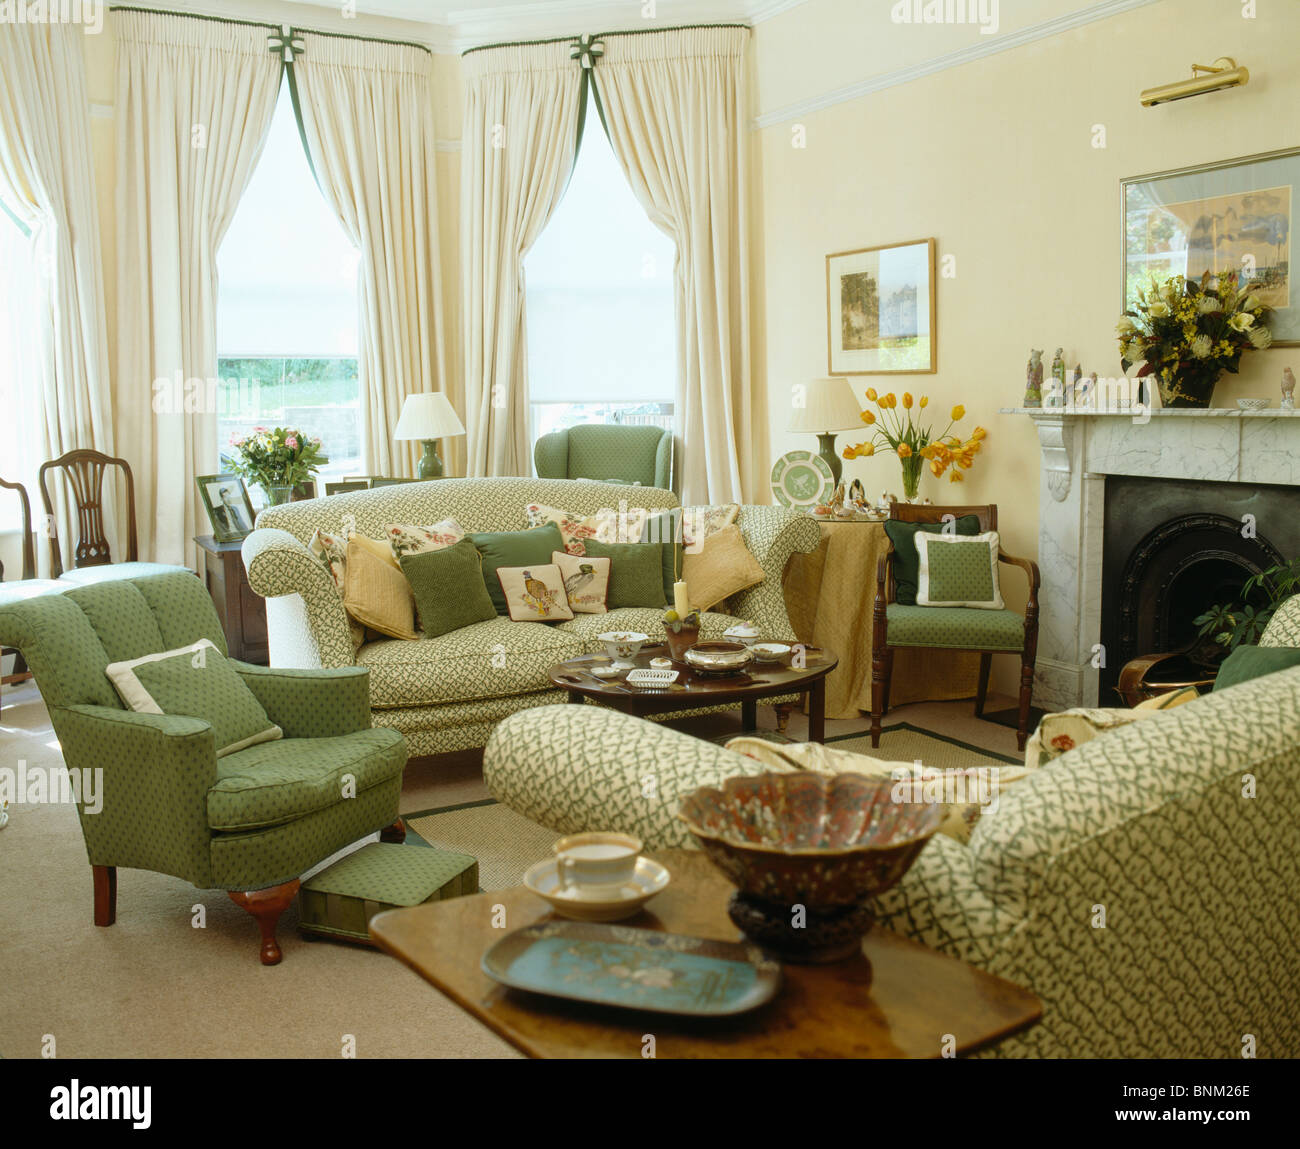 green cushions living room affordable furniture armchair and sofa piled with in traditional cream curtains on bay window